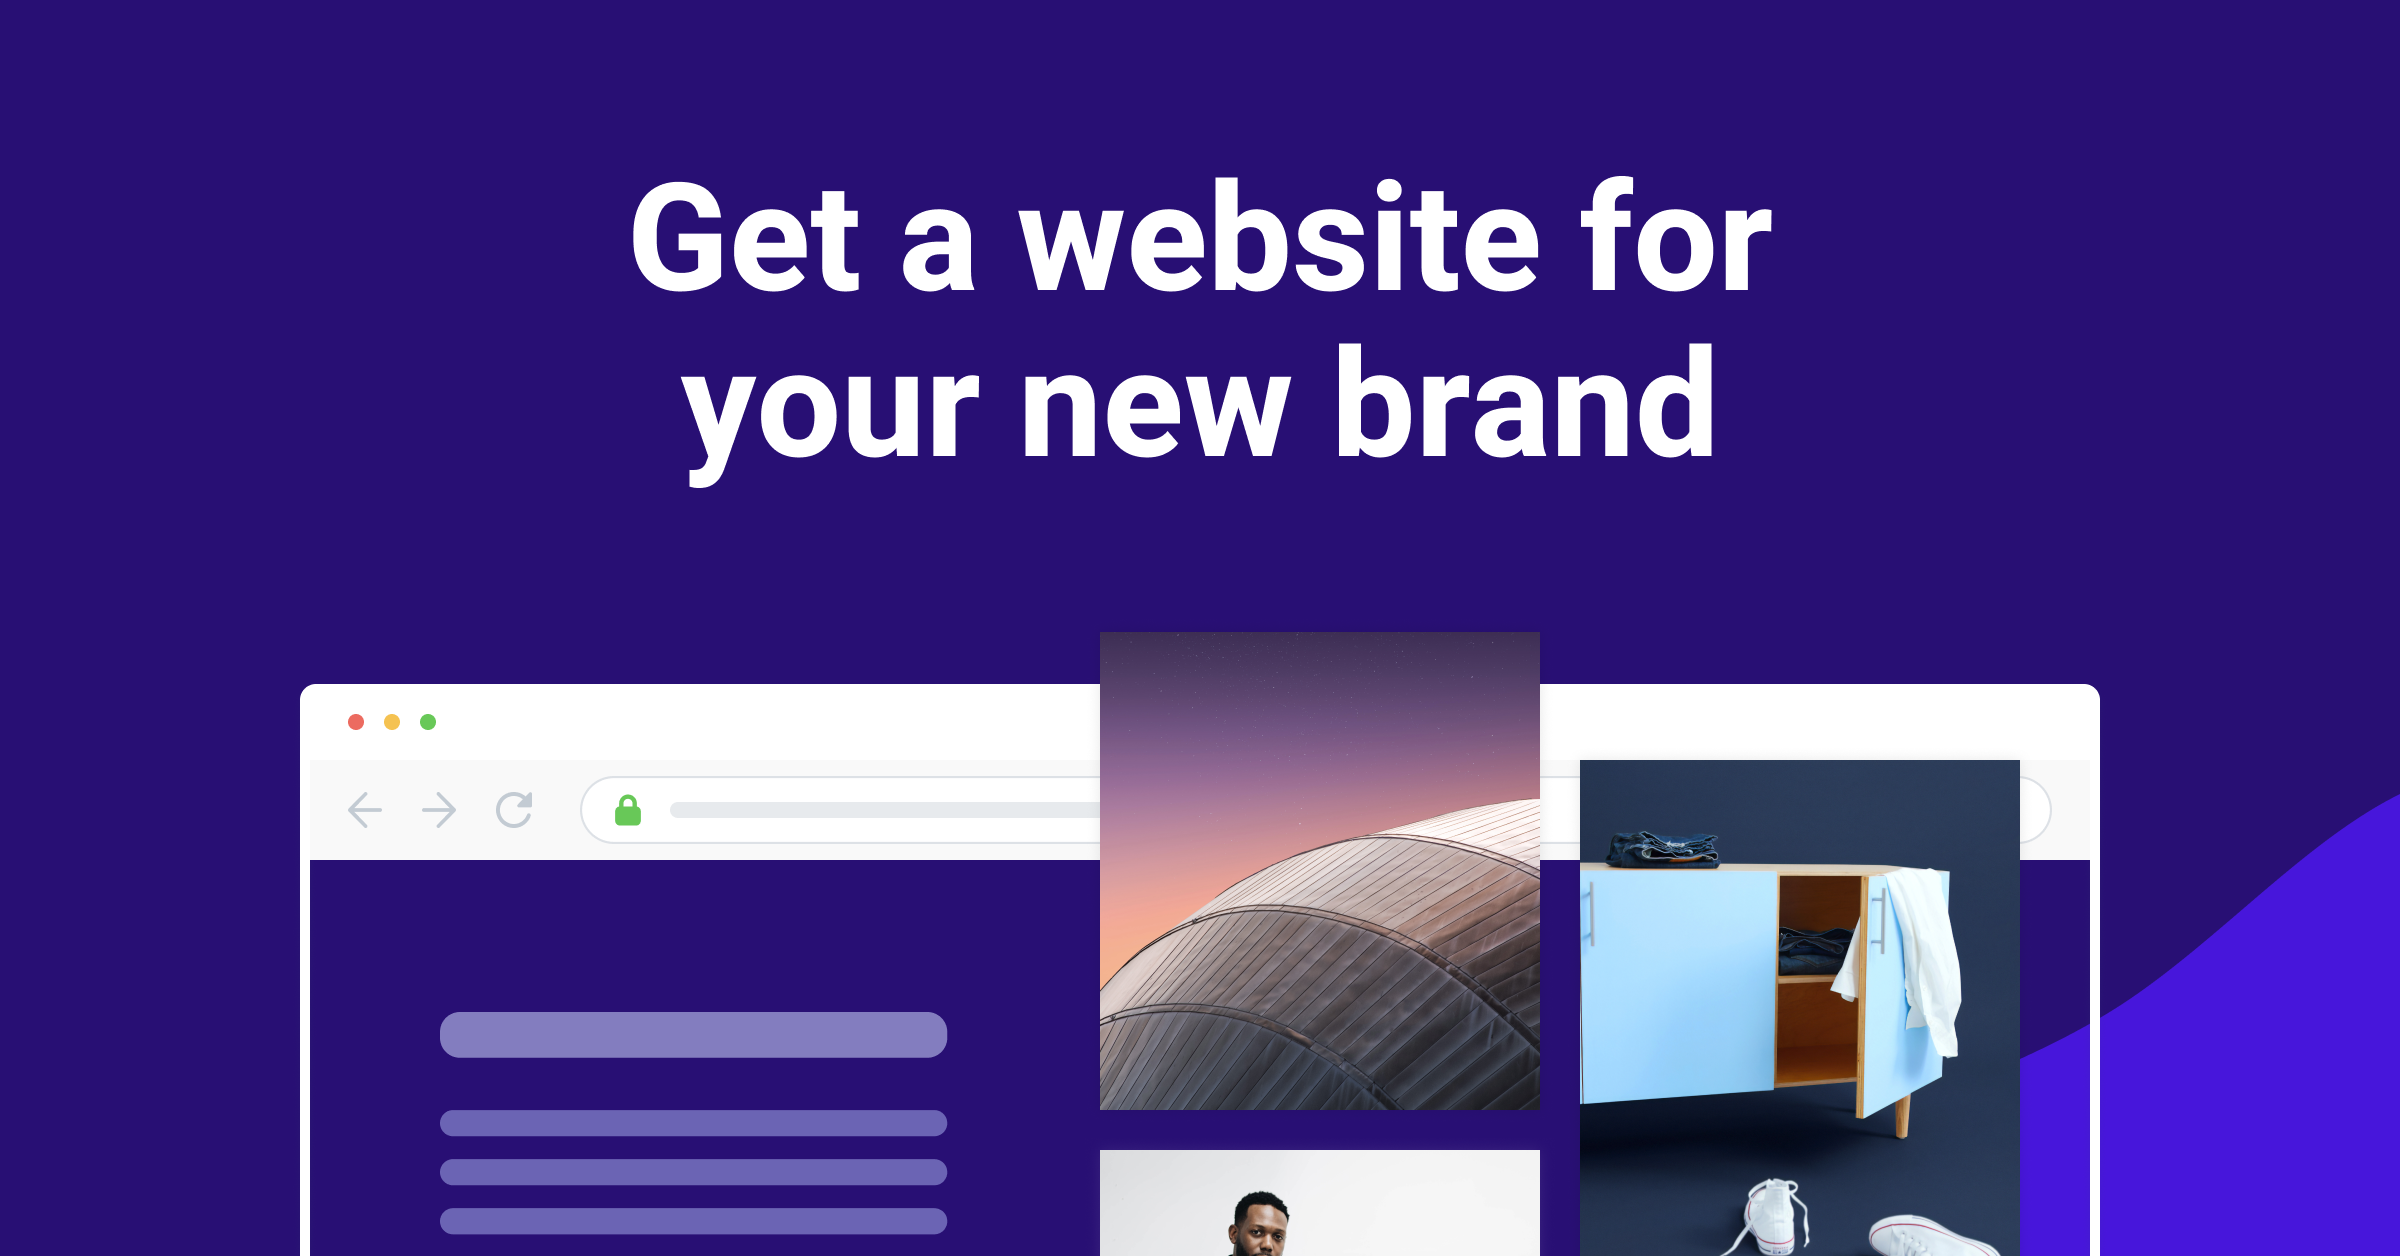 a website template in royal blue color